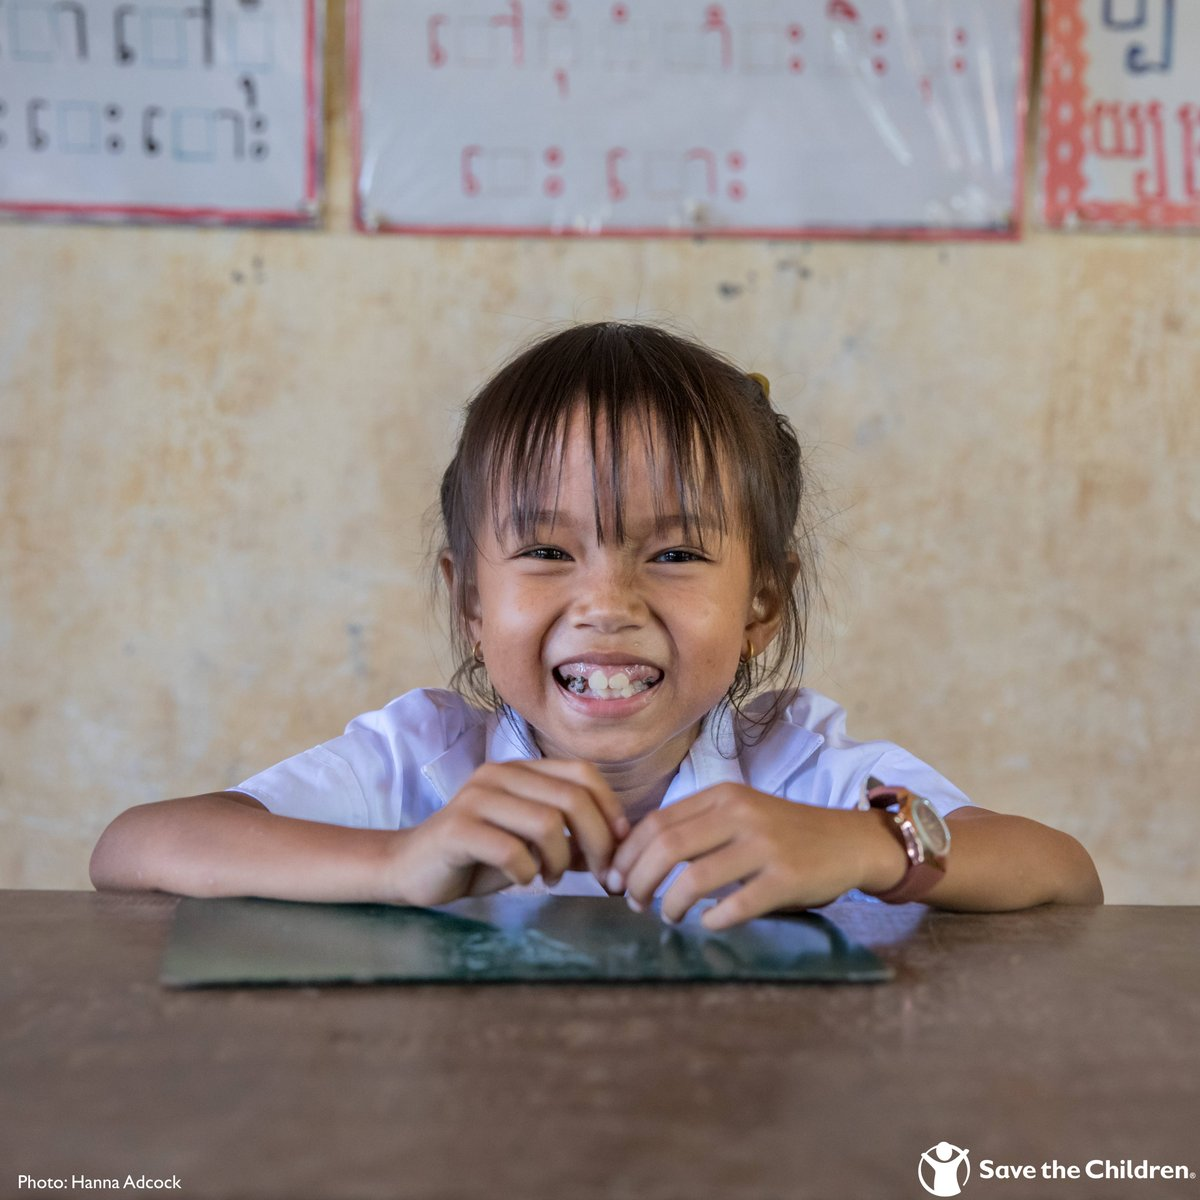 An educated girl is more likely to realize her dream of becoming a 👩⚕️ Doctor, 👩🏫 Teacher, 👩🔬 Scientist, 🙋 Leader! In honor of #DayoftheGirl, empower a girl to reach her full potential by giving her the gift of an education: ow.ly/jcTz50BMpes